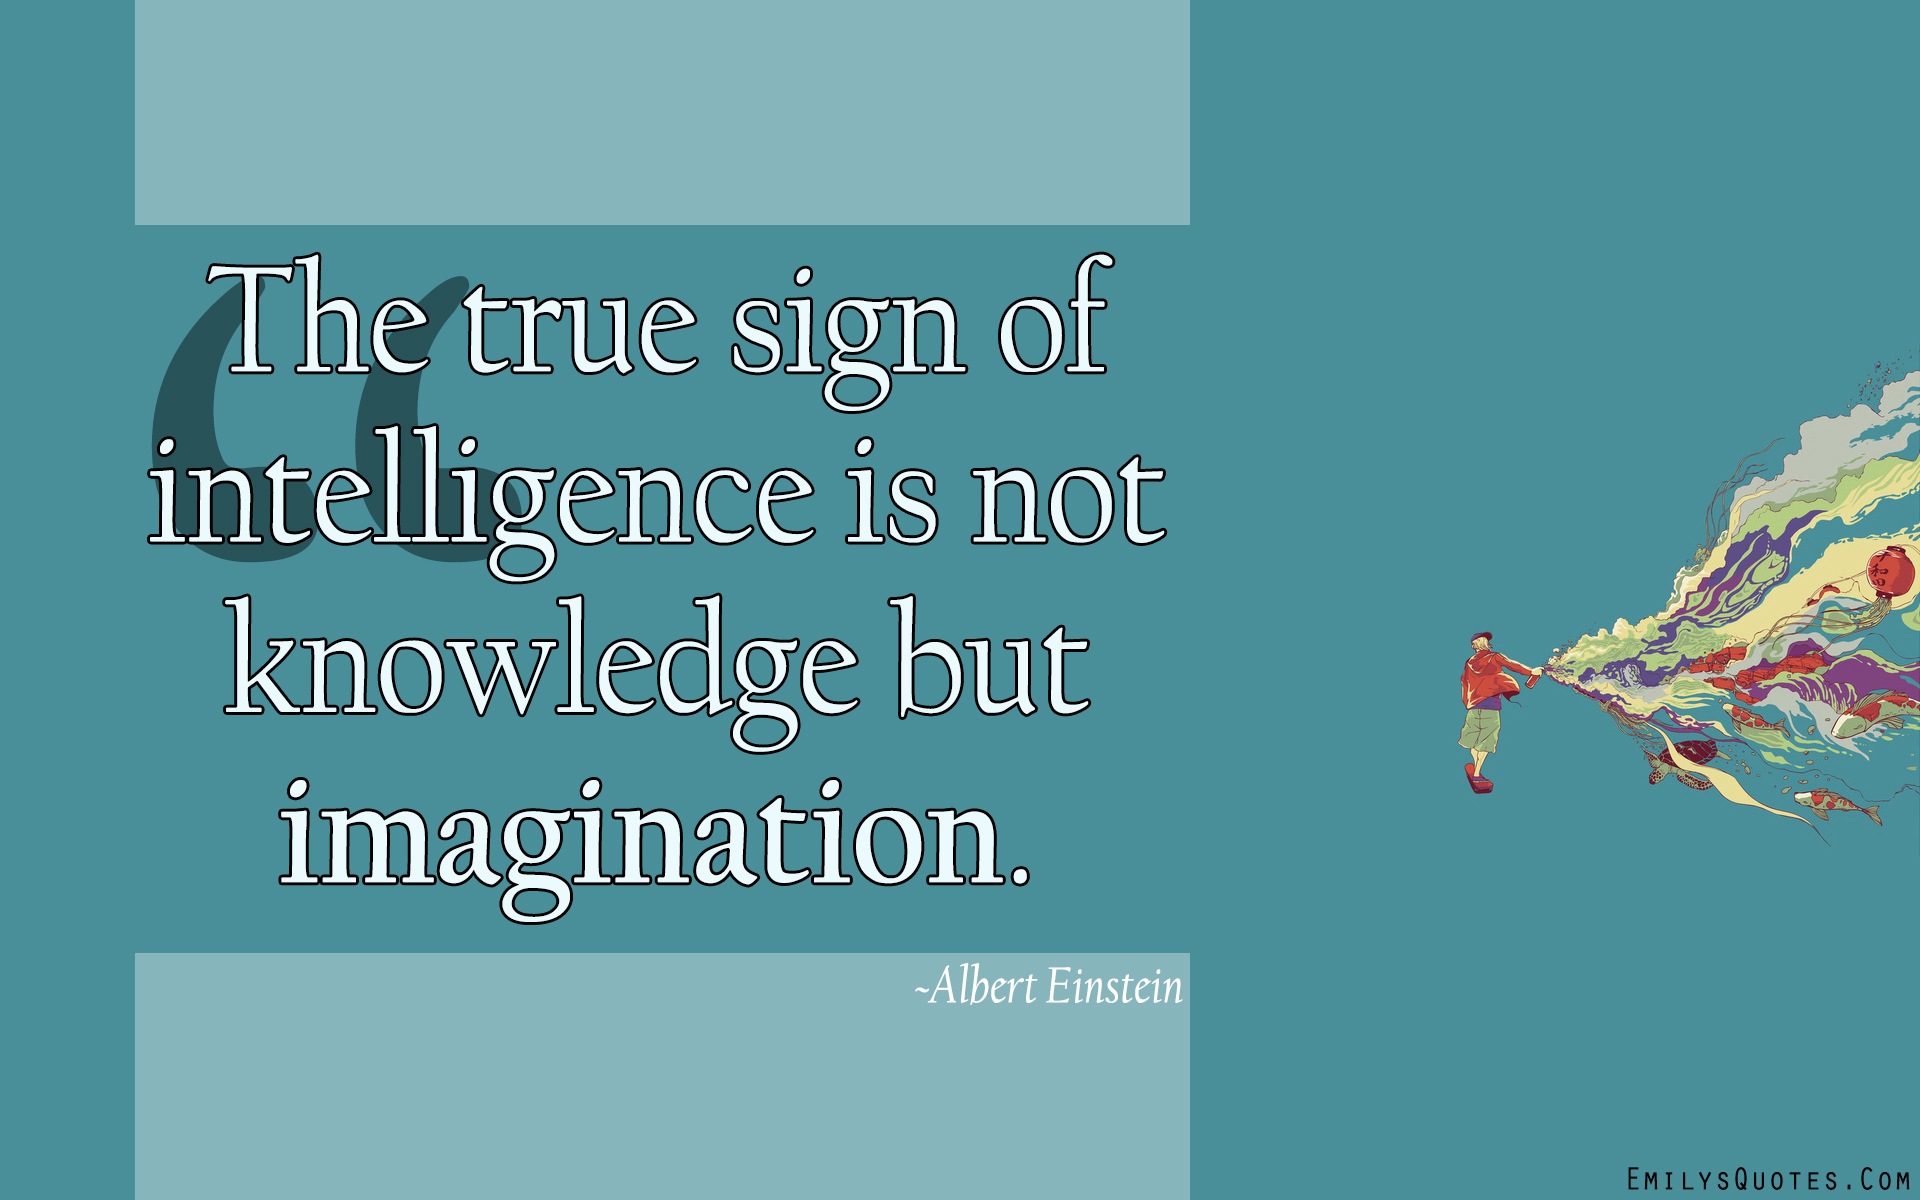 EmilysQuotes.Com - truth, wisdom, intelligence, knowledge, imagination, Albert Einstein, truth